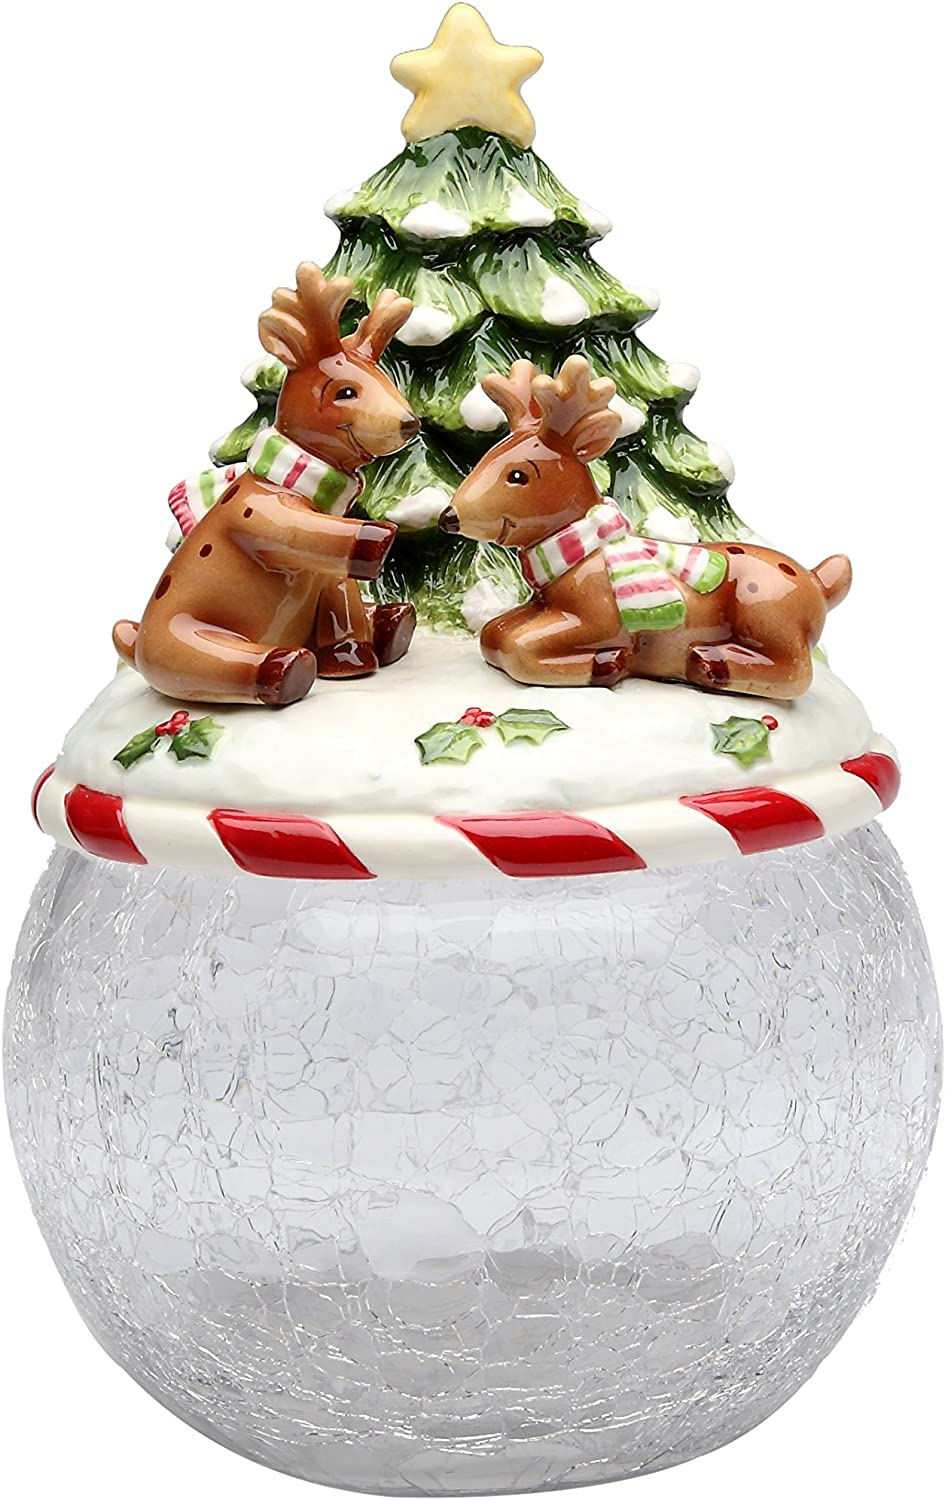 Cosmos Gifts Reindeer Tree Glass Dedication Cookie Ceramic with Lid cheap Jar 9-